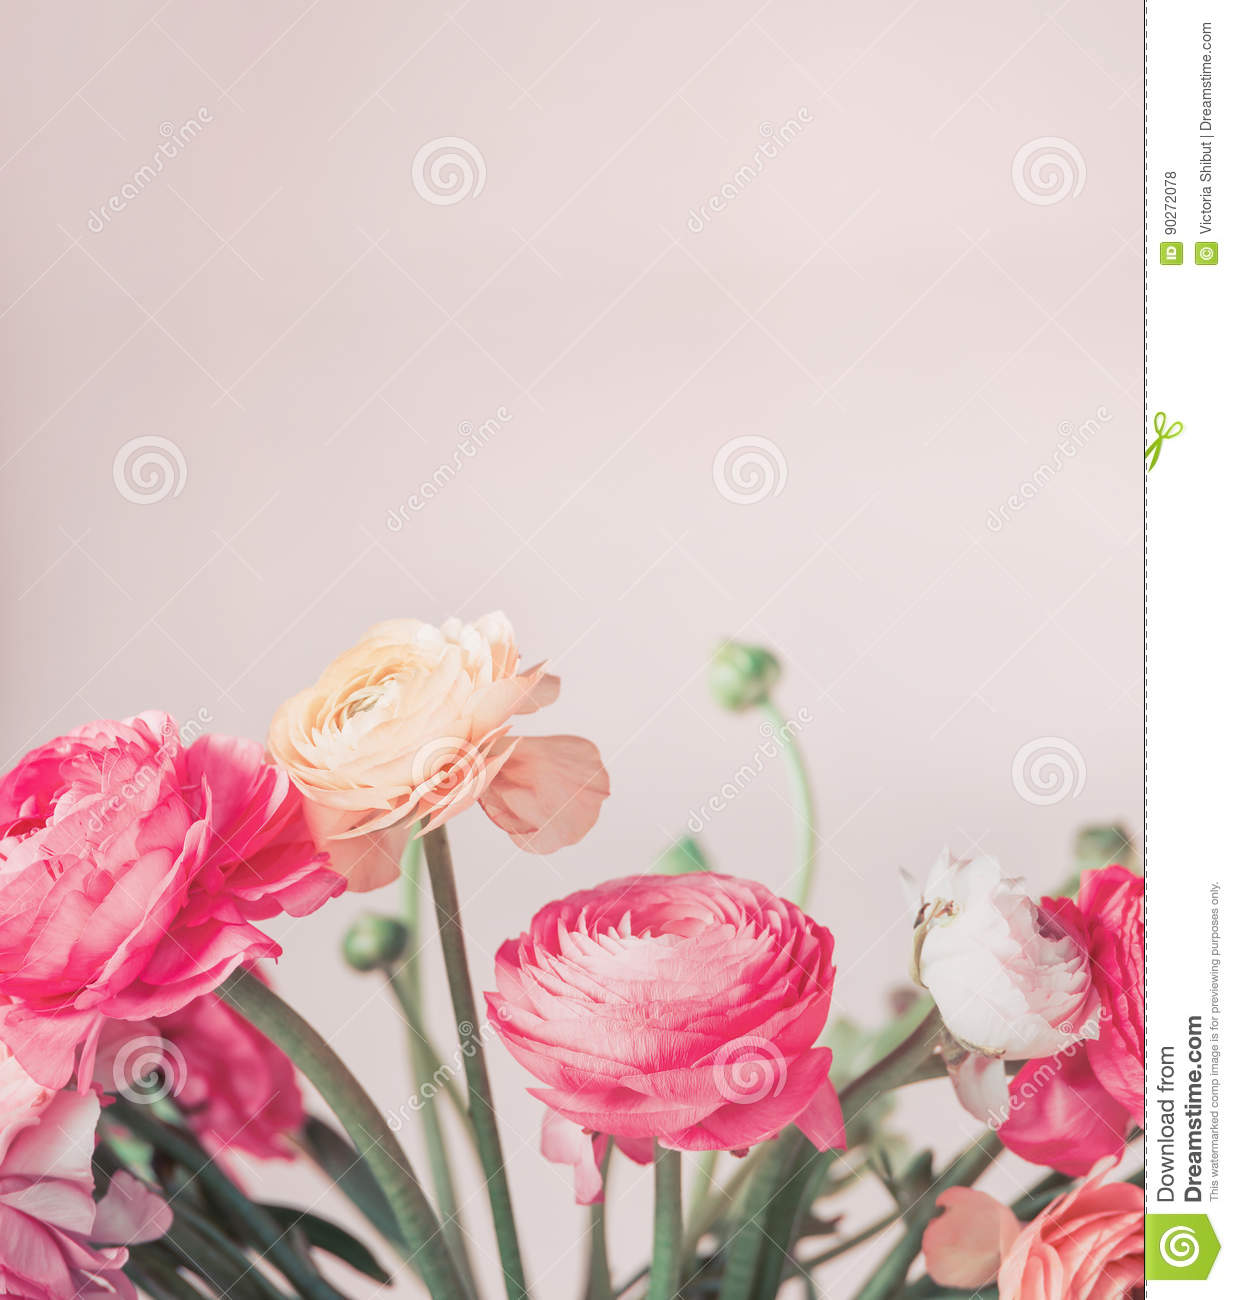 Super Pretty Pastel Color Flowers Blooming At Light Background, Floral  NH96